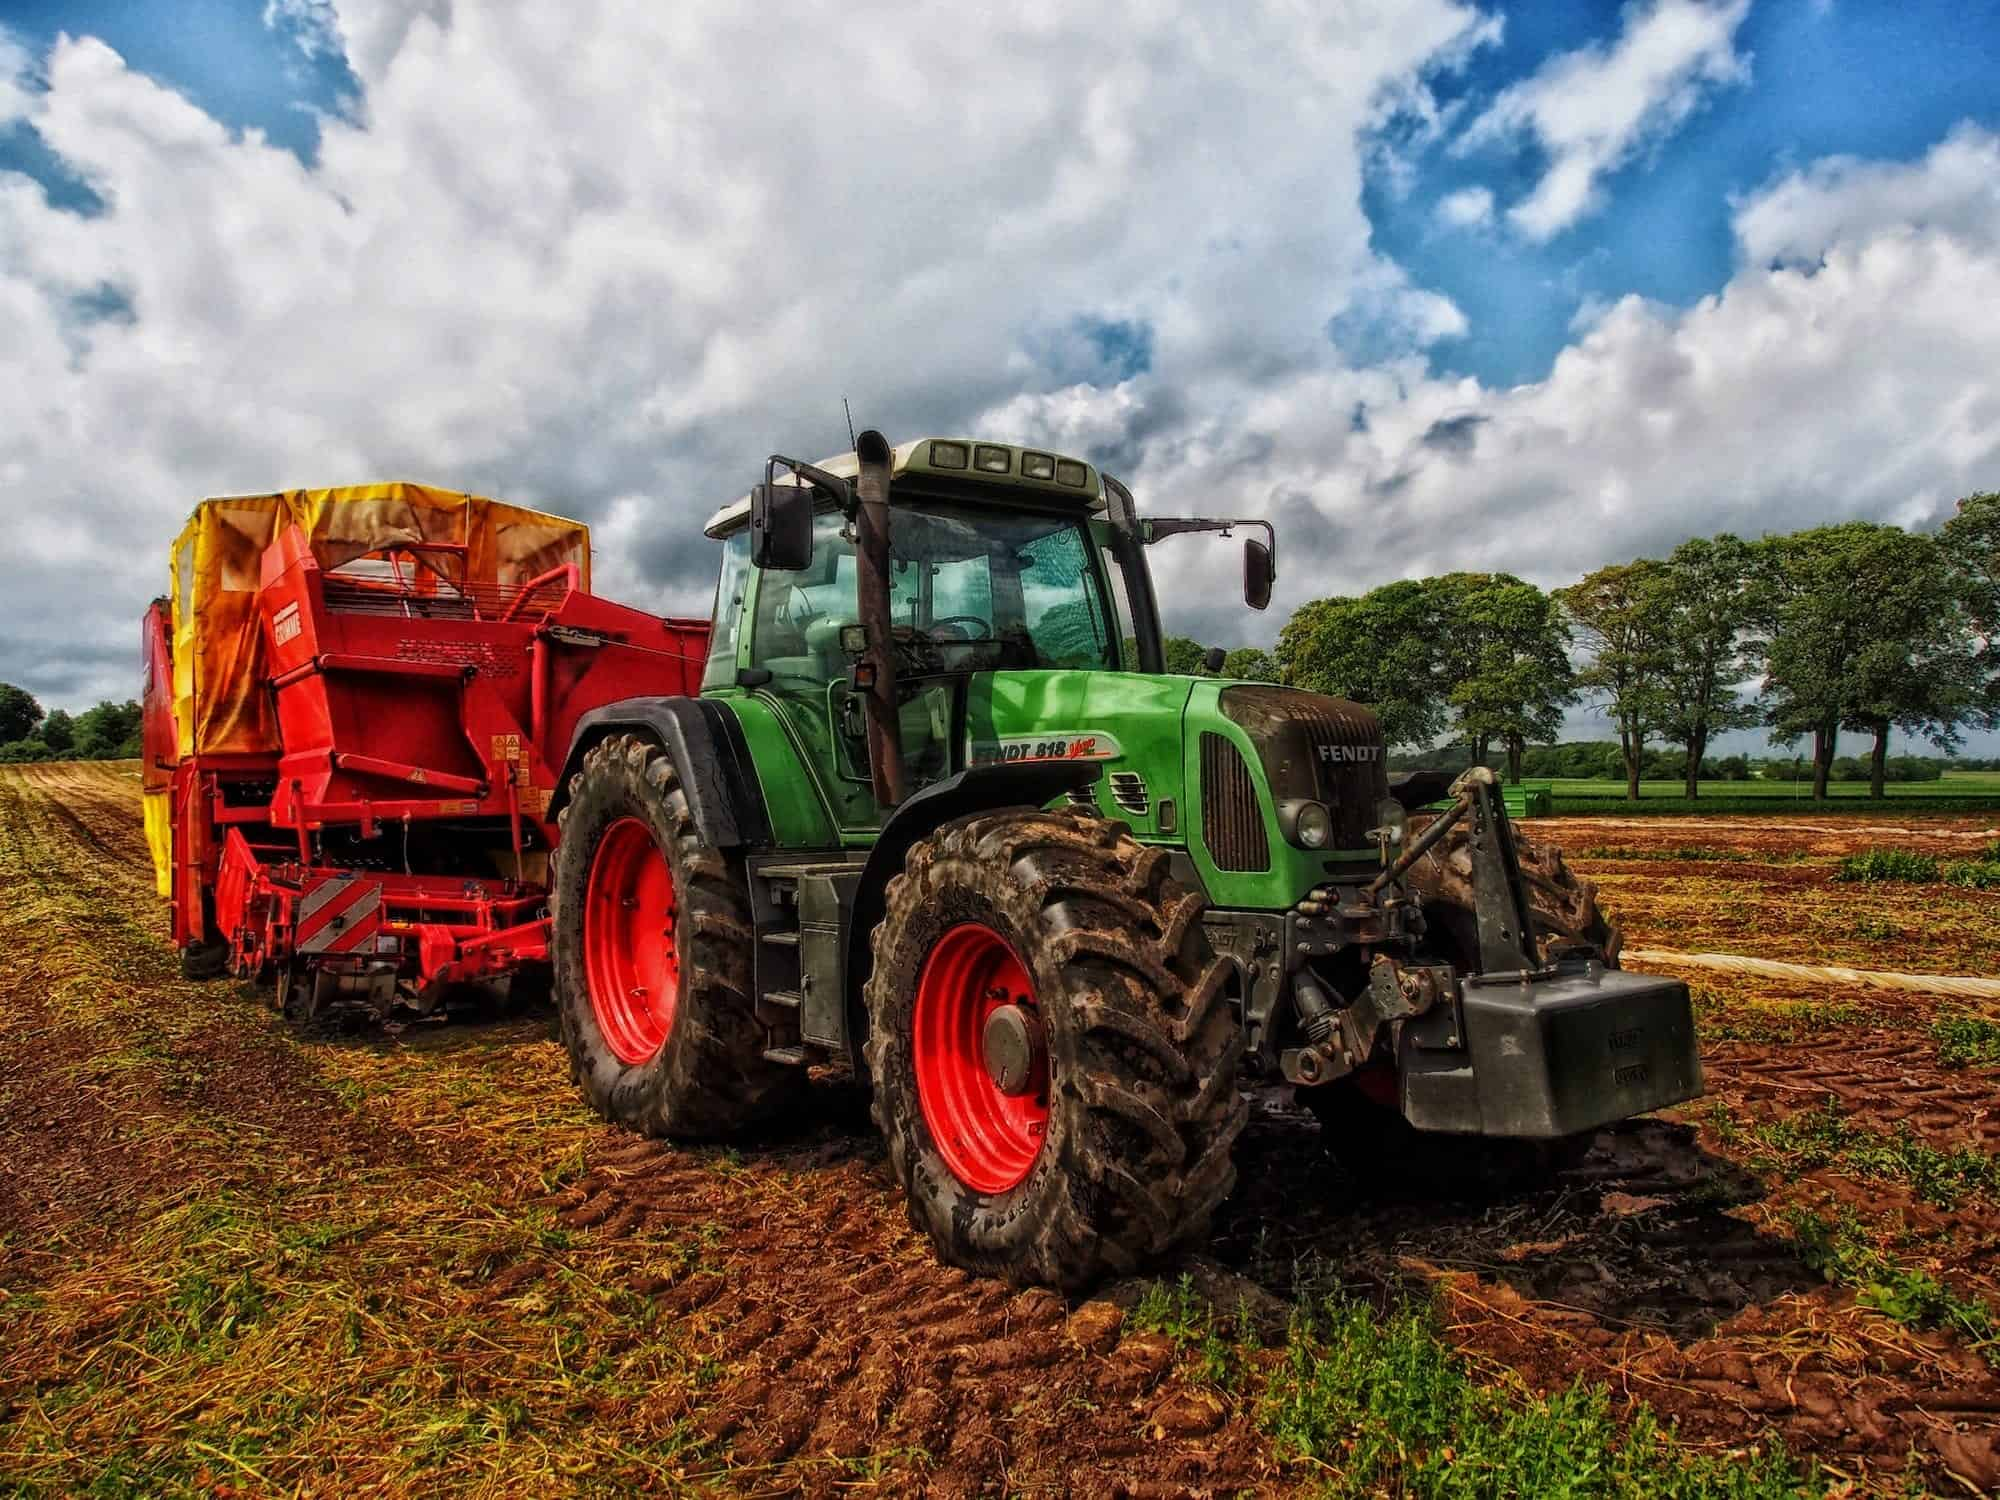 do tractors need road tax